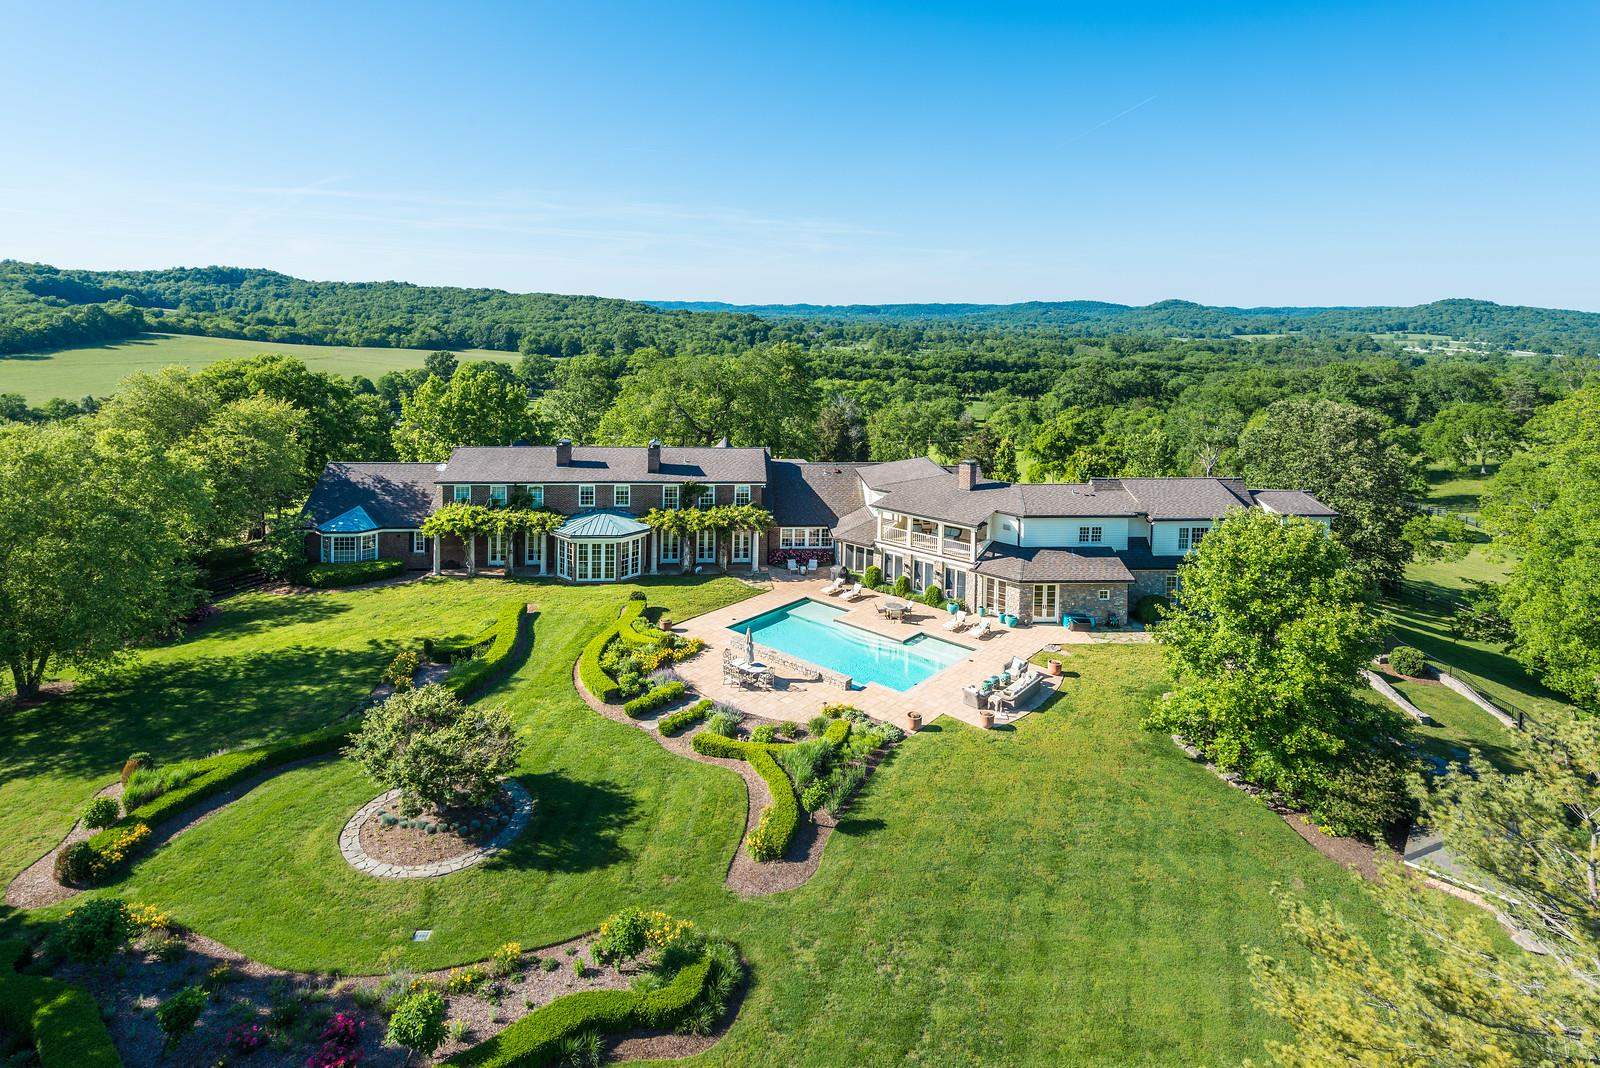 Commanding panoramic VIEWS.46 acres.Epicenter of 'in-town' equestrian activity.1500 ft River Frontage.Expansive 10,000 sq.ft.'Hampton's Style' brick Main Residence.Retreat to Guest/Bluff house.'Pool House',Screened Porch,Outbuildings.